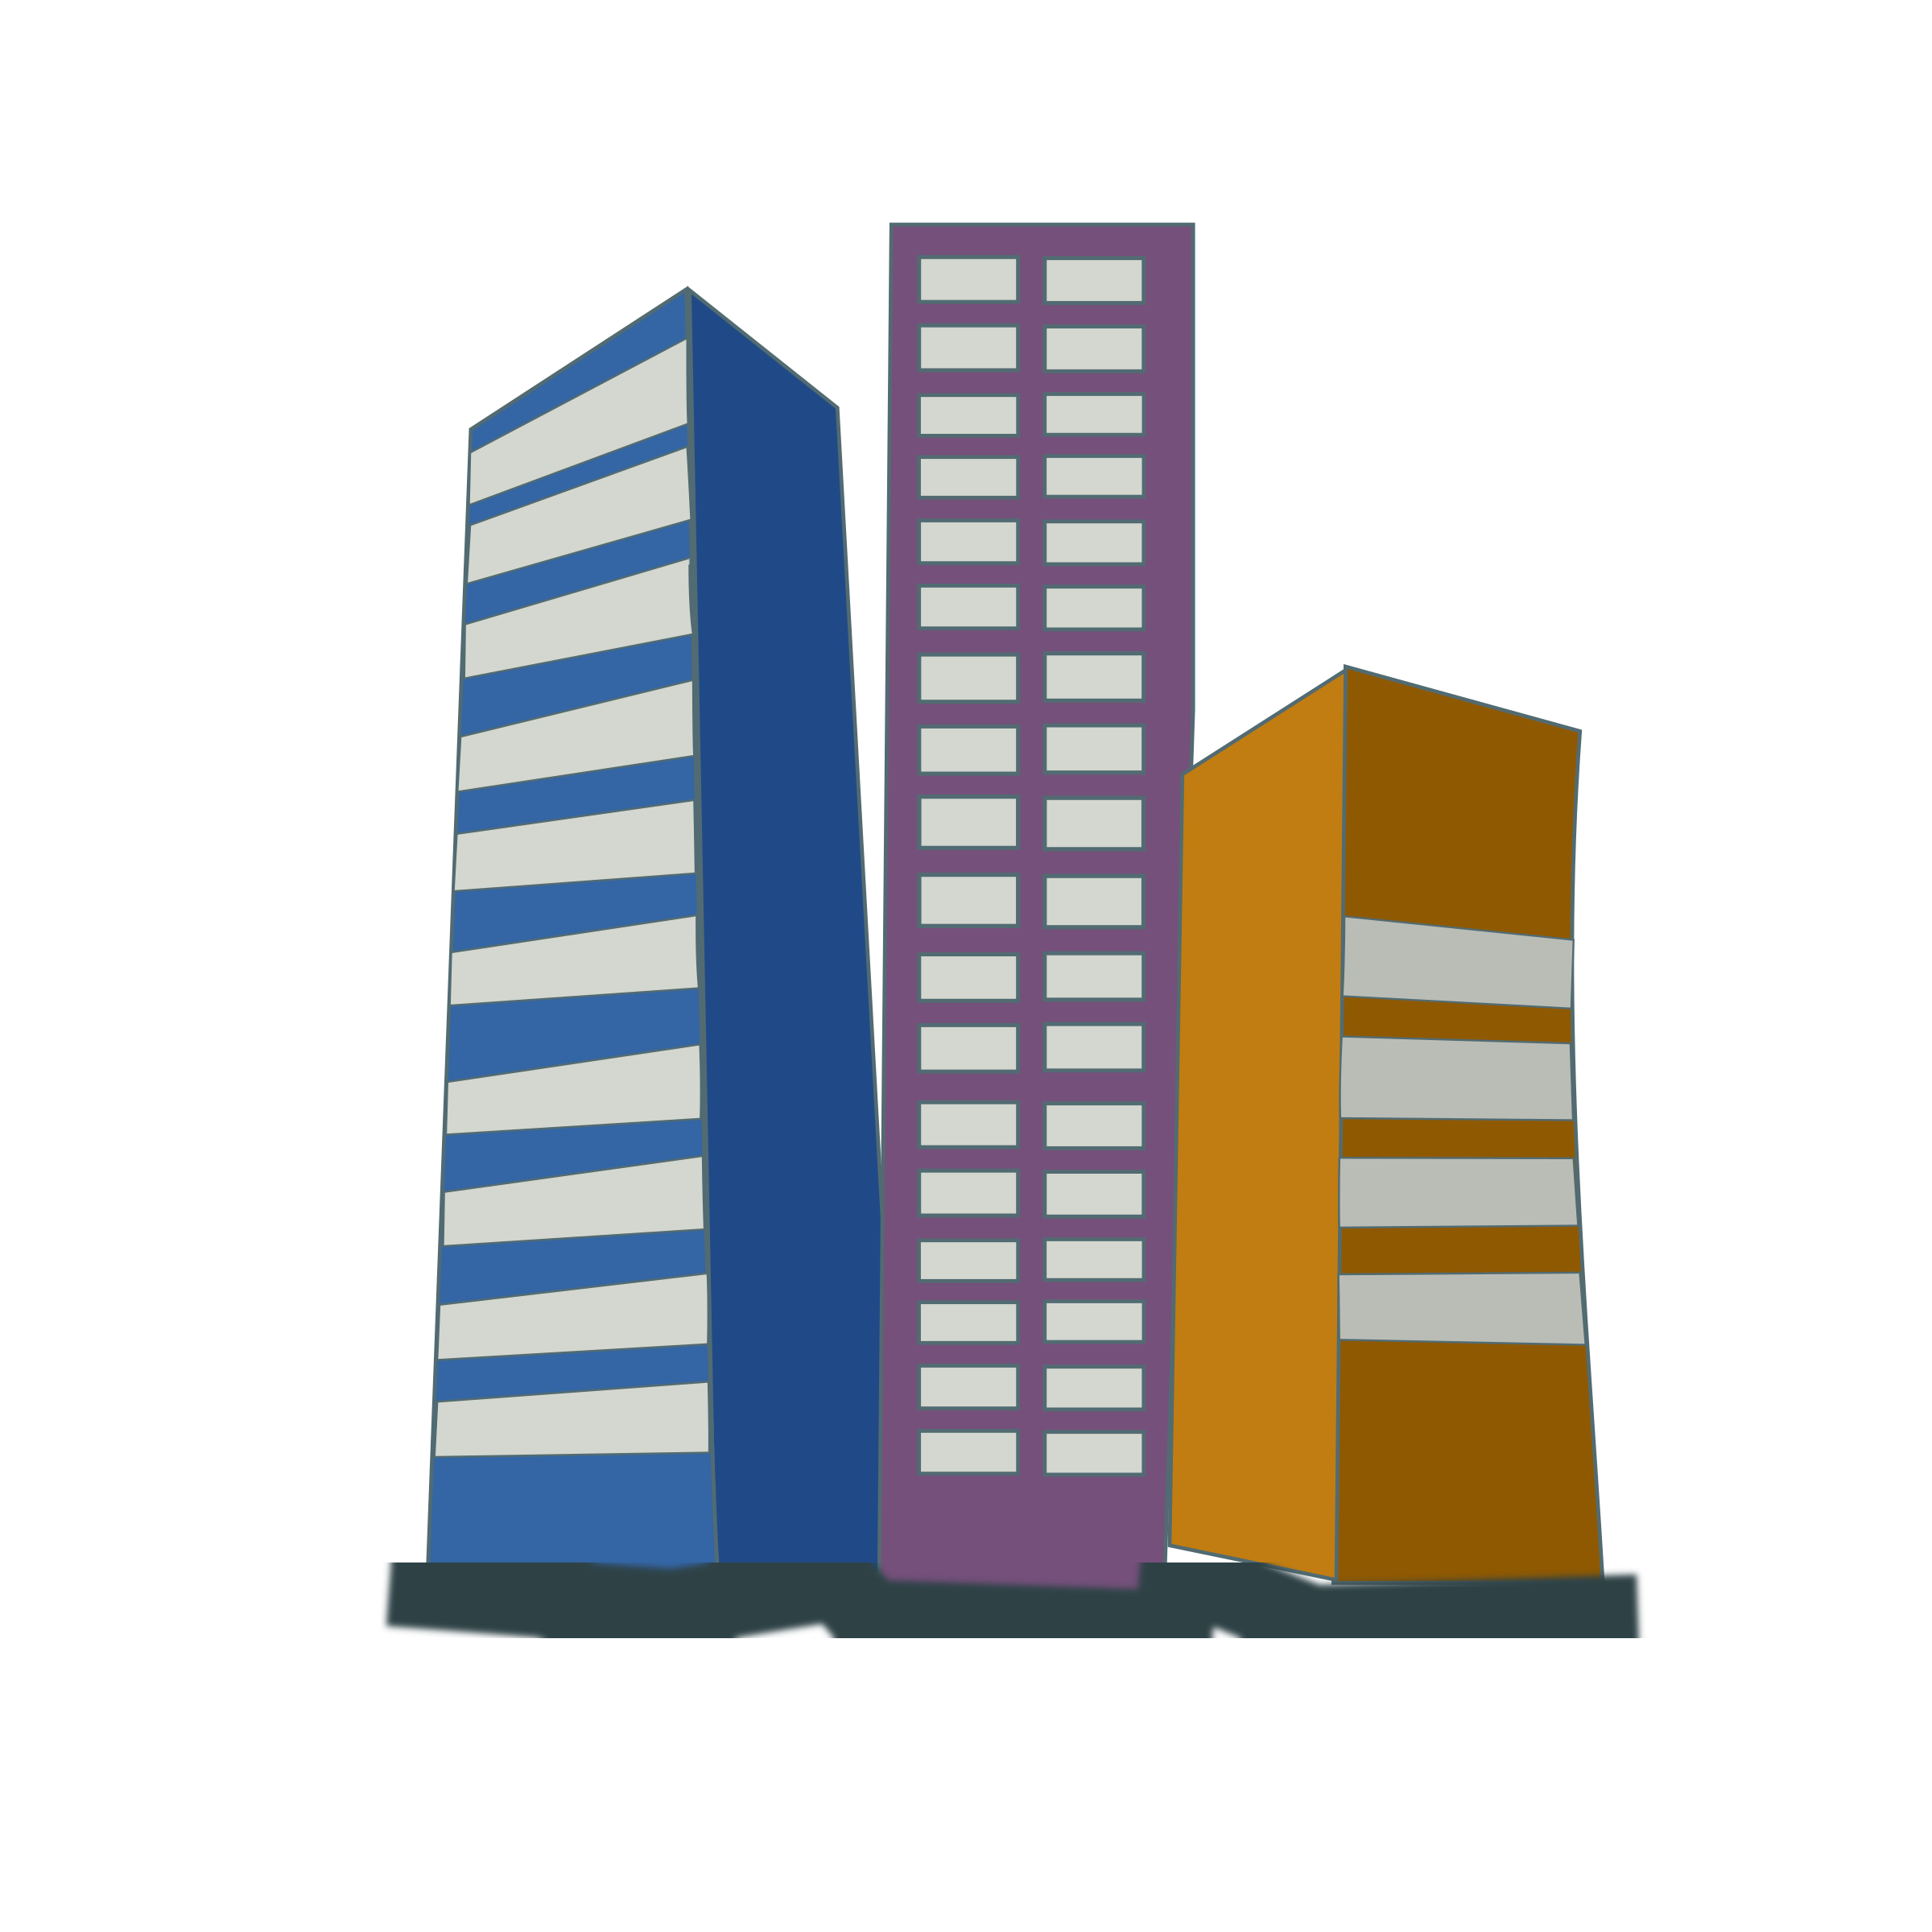 Real estate icon x. Office clipart office block